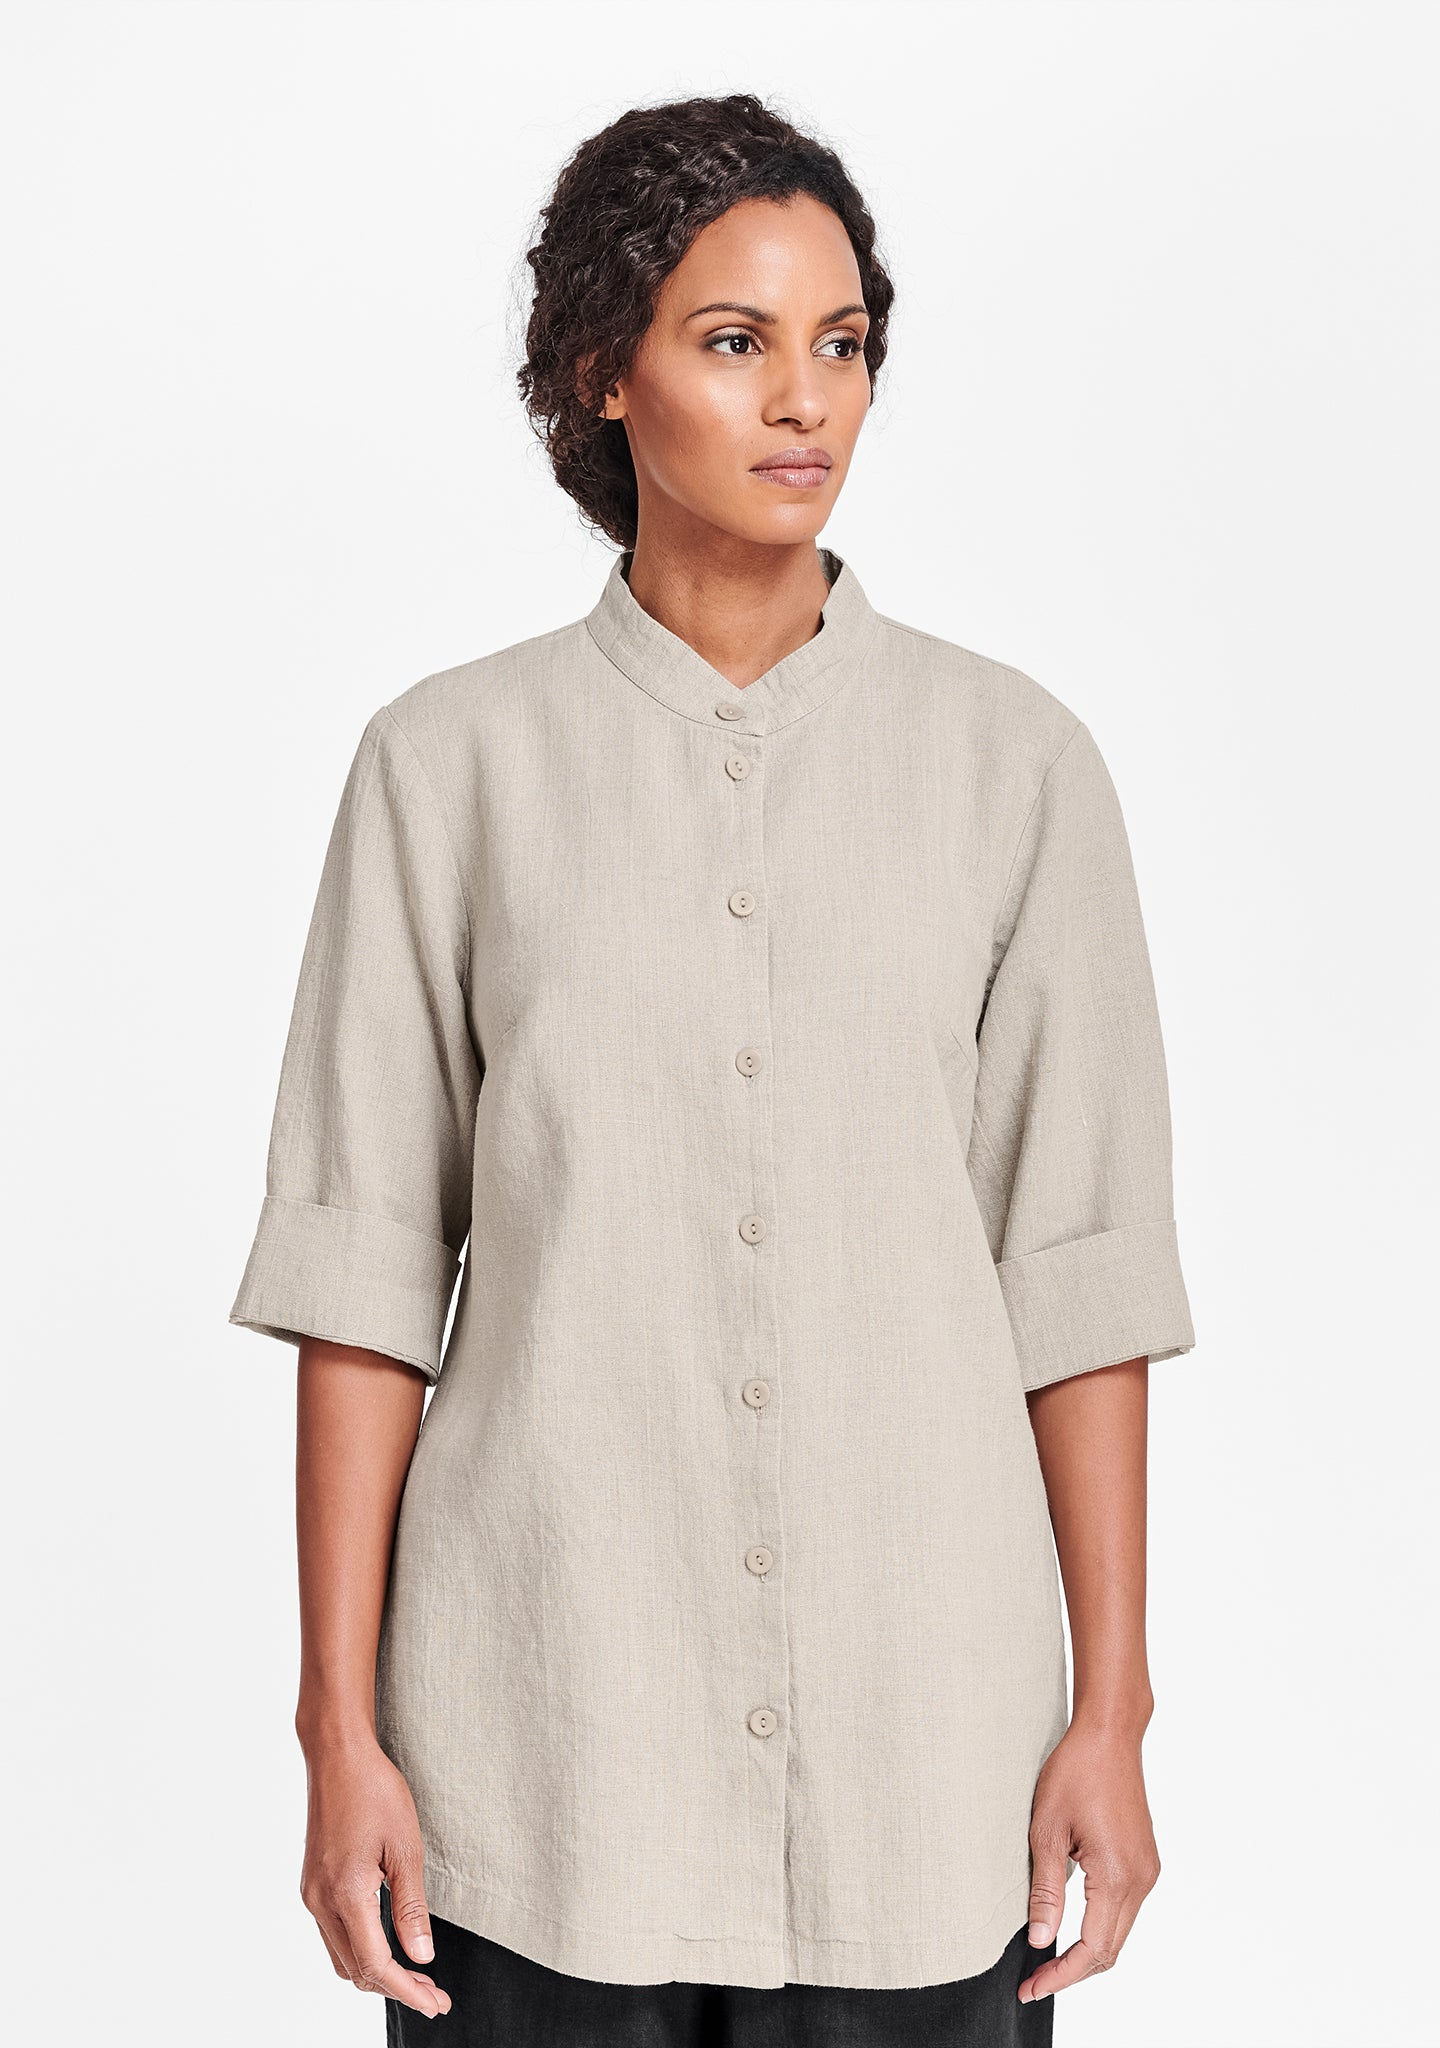 vintage shirt tunic natural